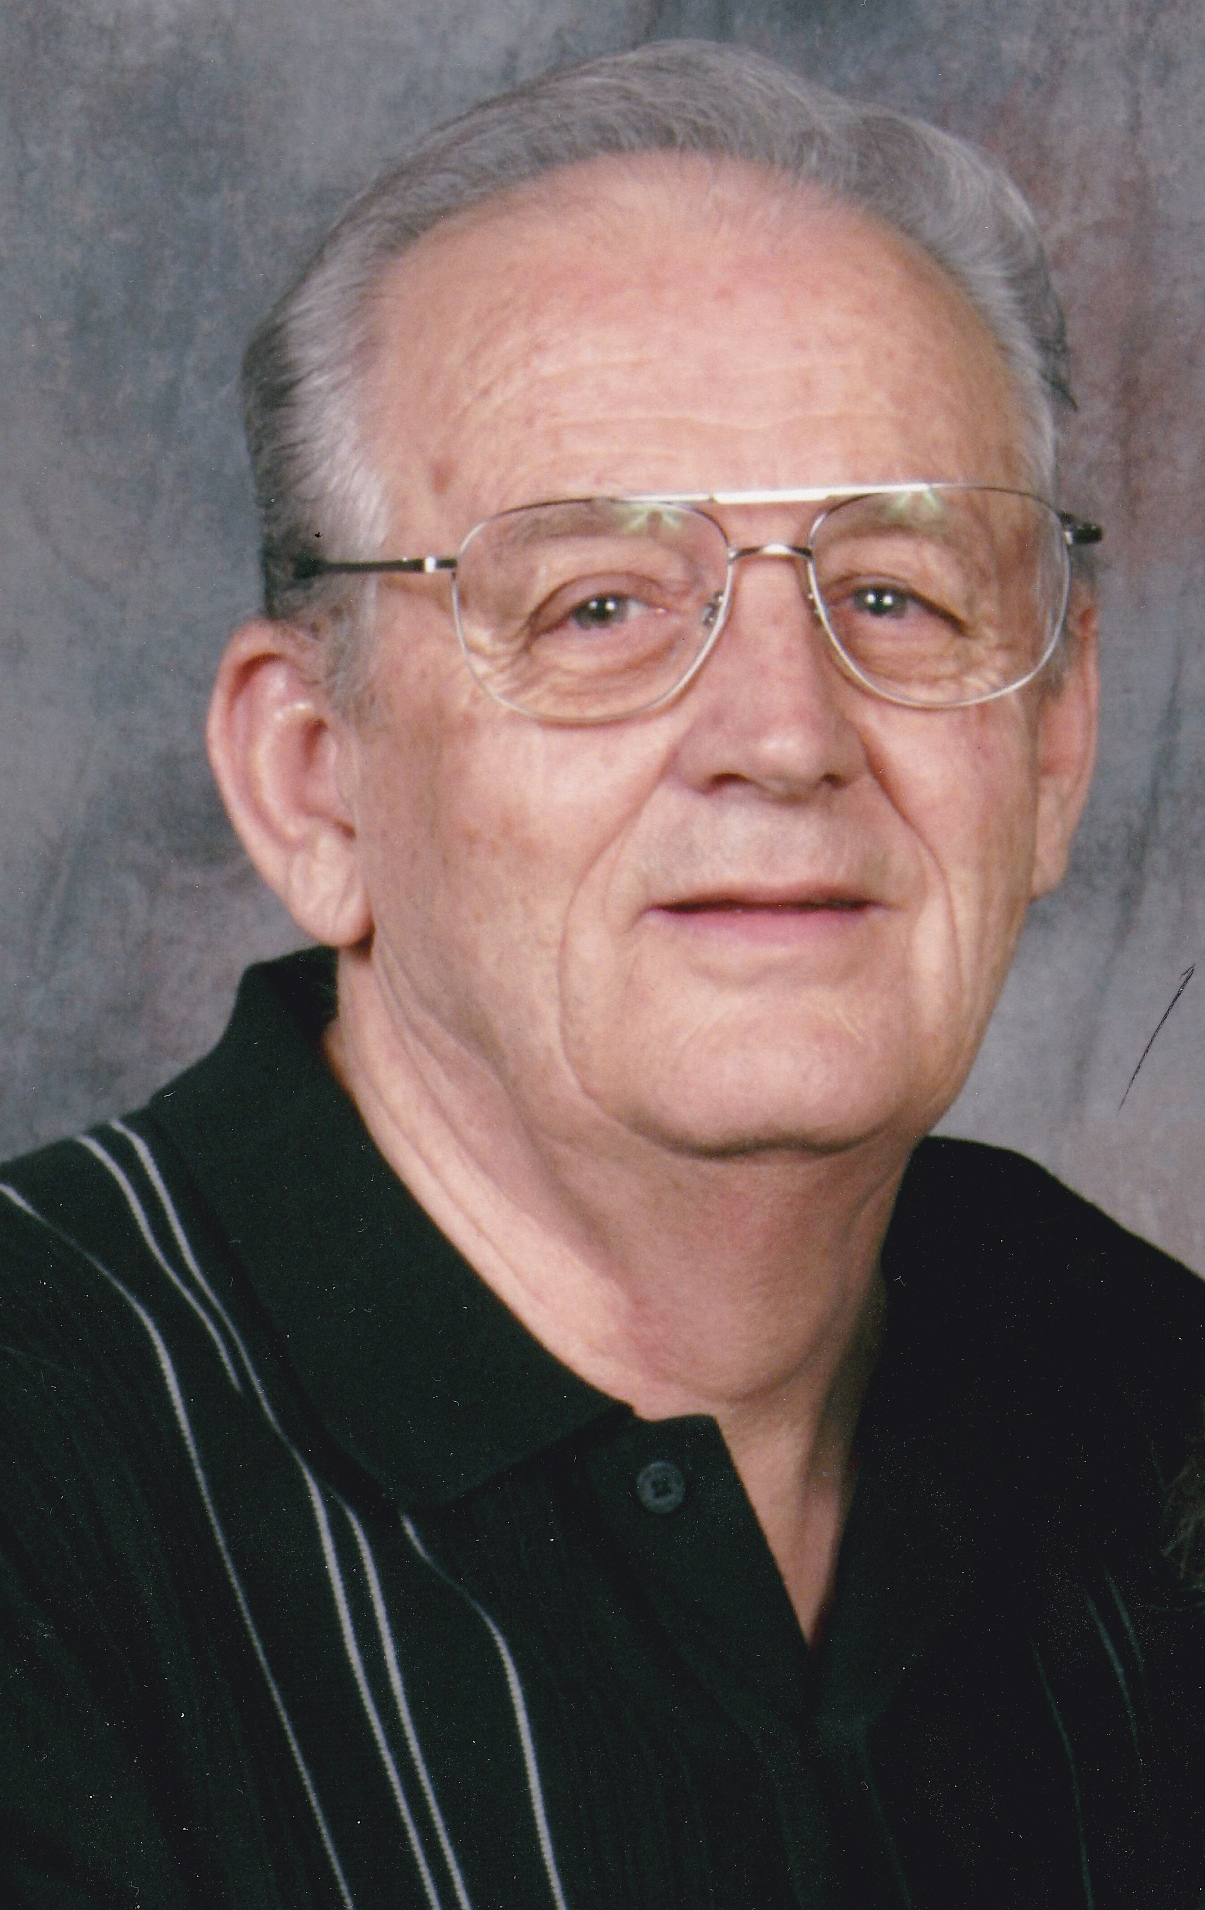 Obituary: Gary Leon Bartlett